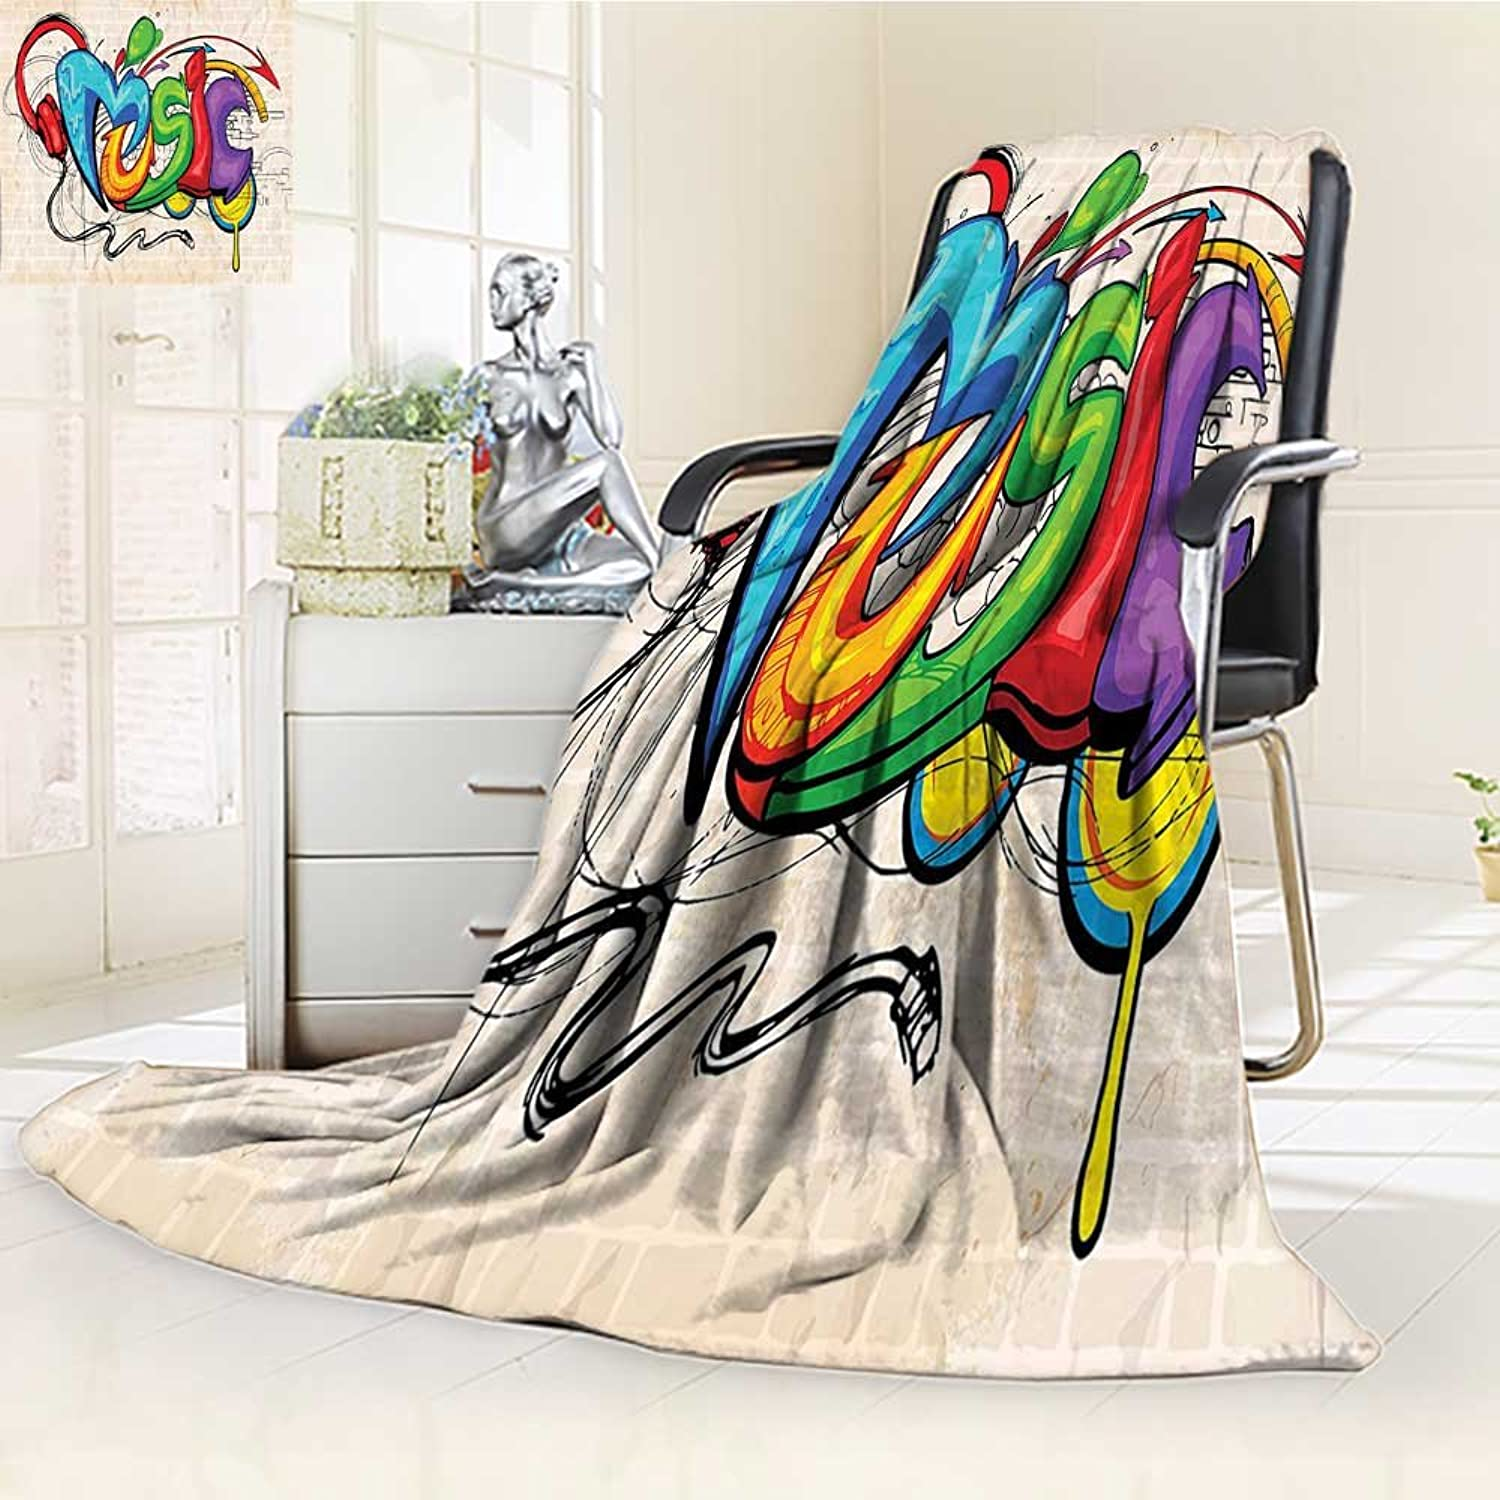 YOYI-HOME Super Soft Lightweight Duplex Printed Blanket Music of Graffiti Style Music Lettering Headphones Hip Hop Rhythm Tempo Hipster Concept Multi Oversized Travel Throw Cover Blanket  W39.5 x H59